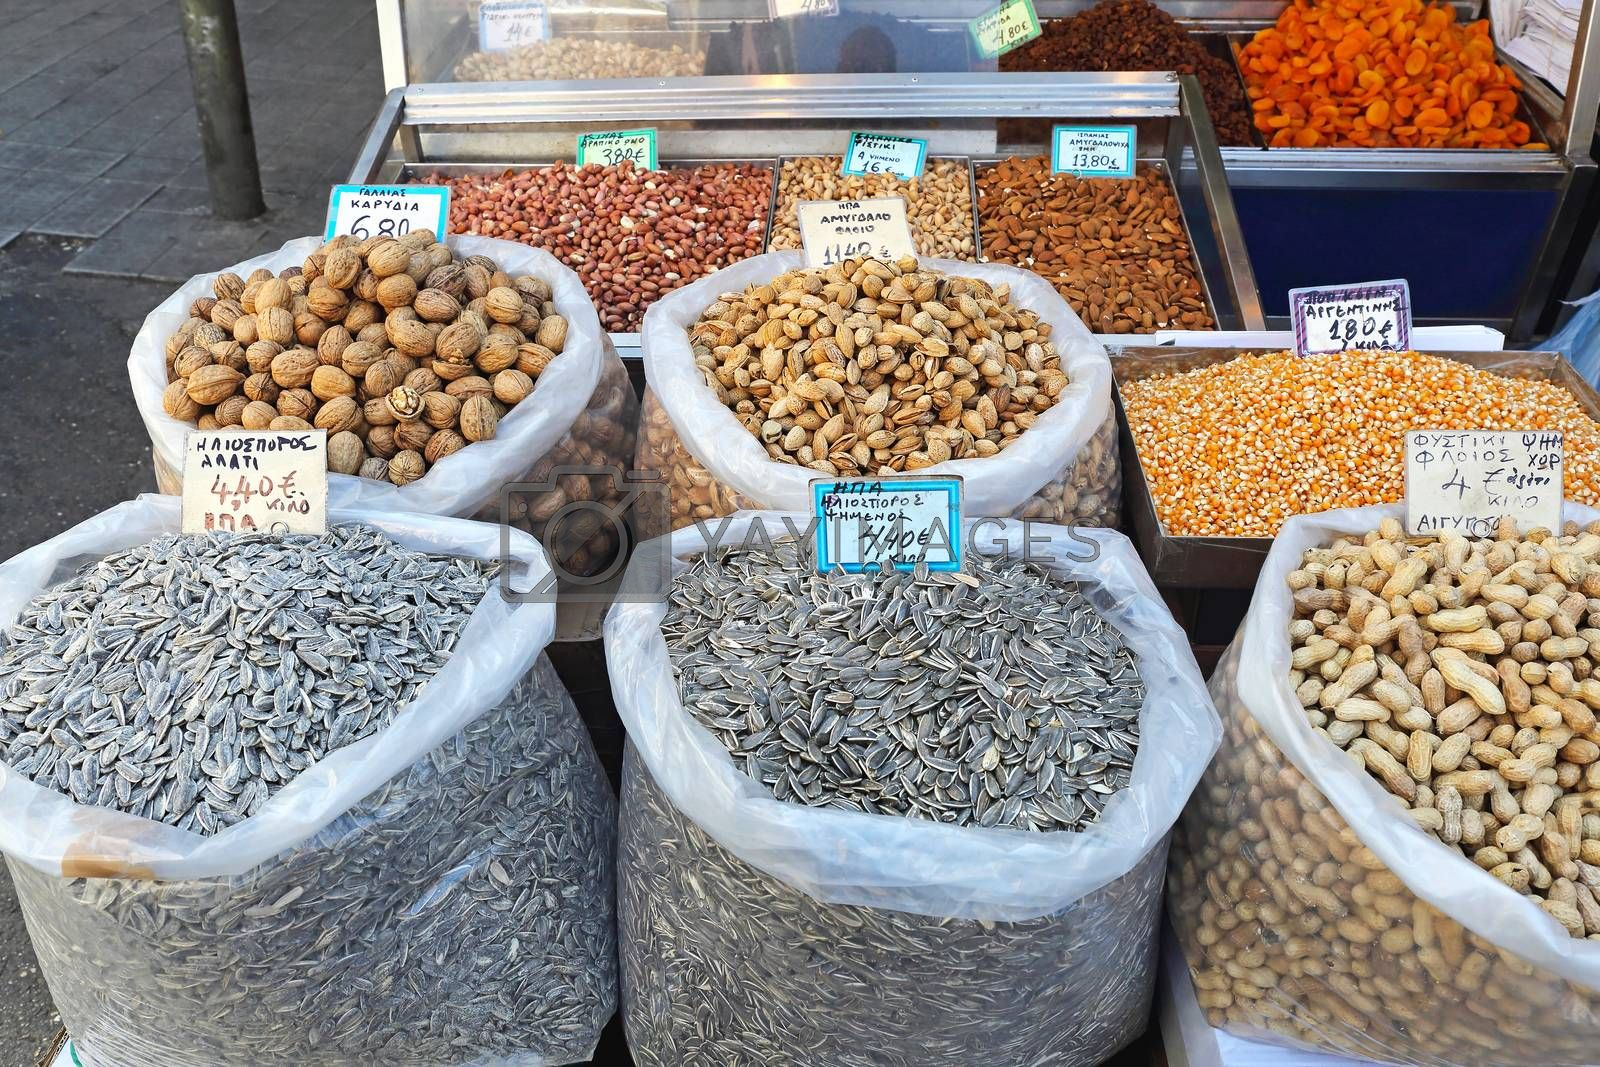 Seeds and Nuts in Bulk Sacks at Farmers Market